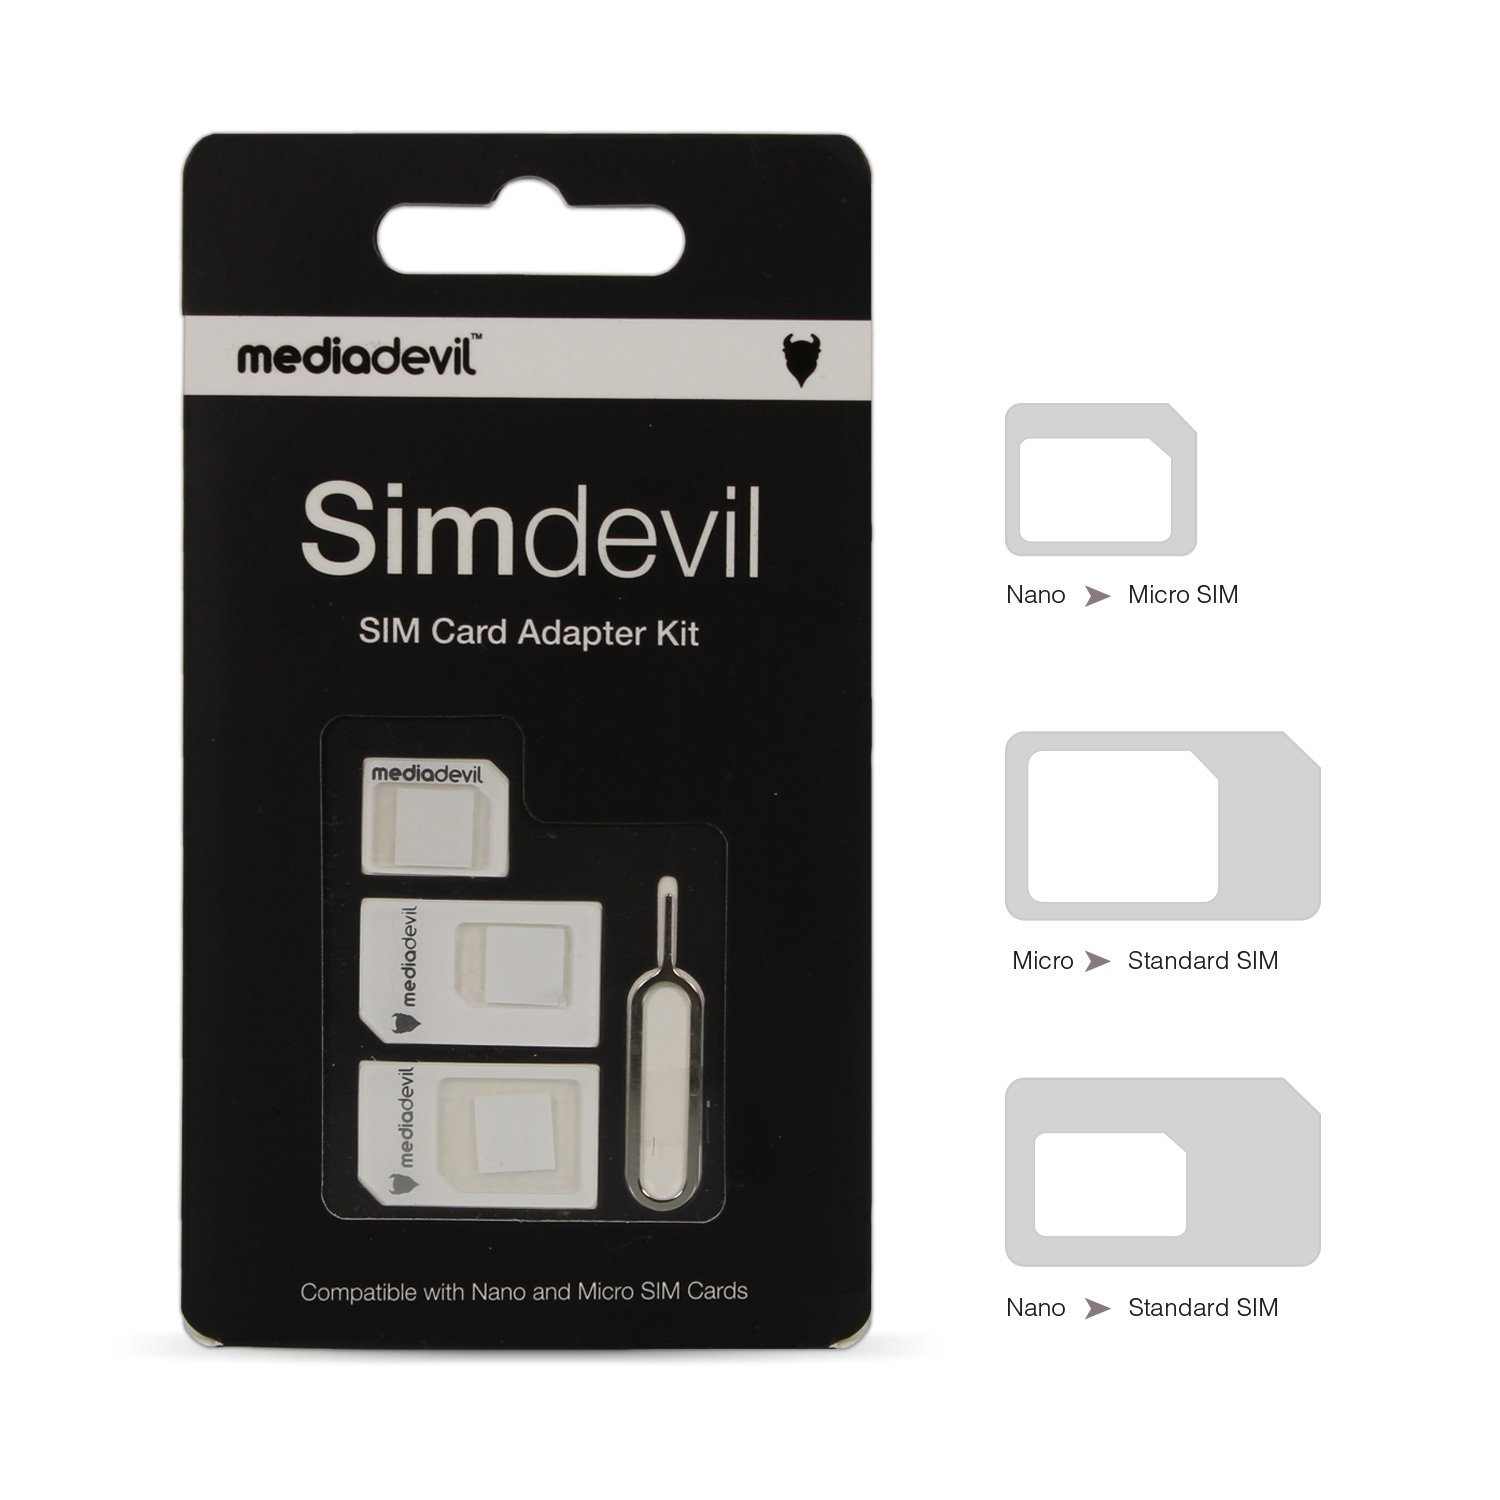 Mediadevil simdevil adapter kit